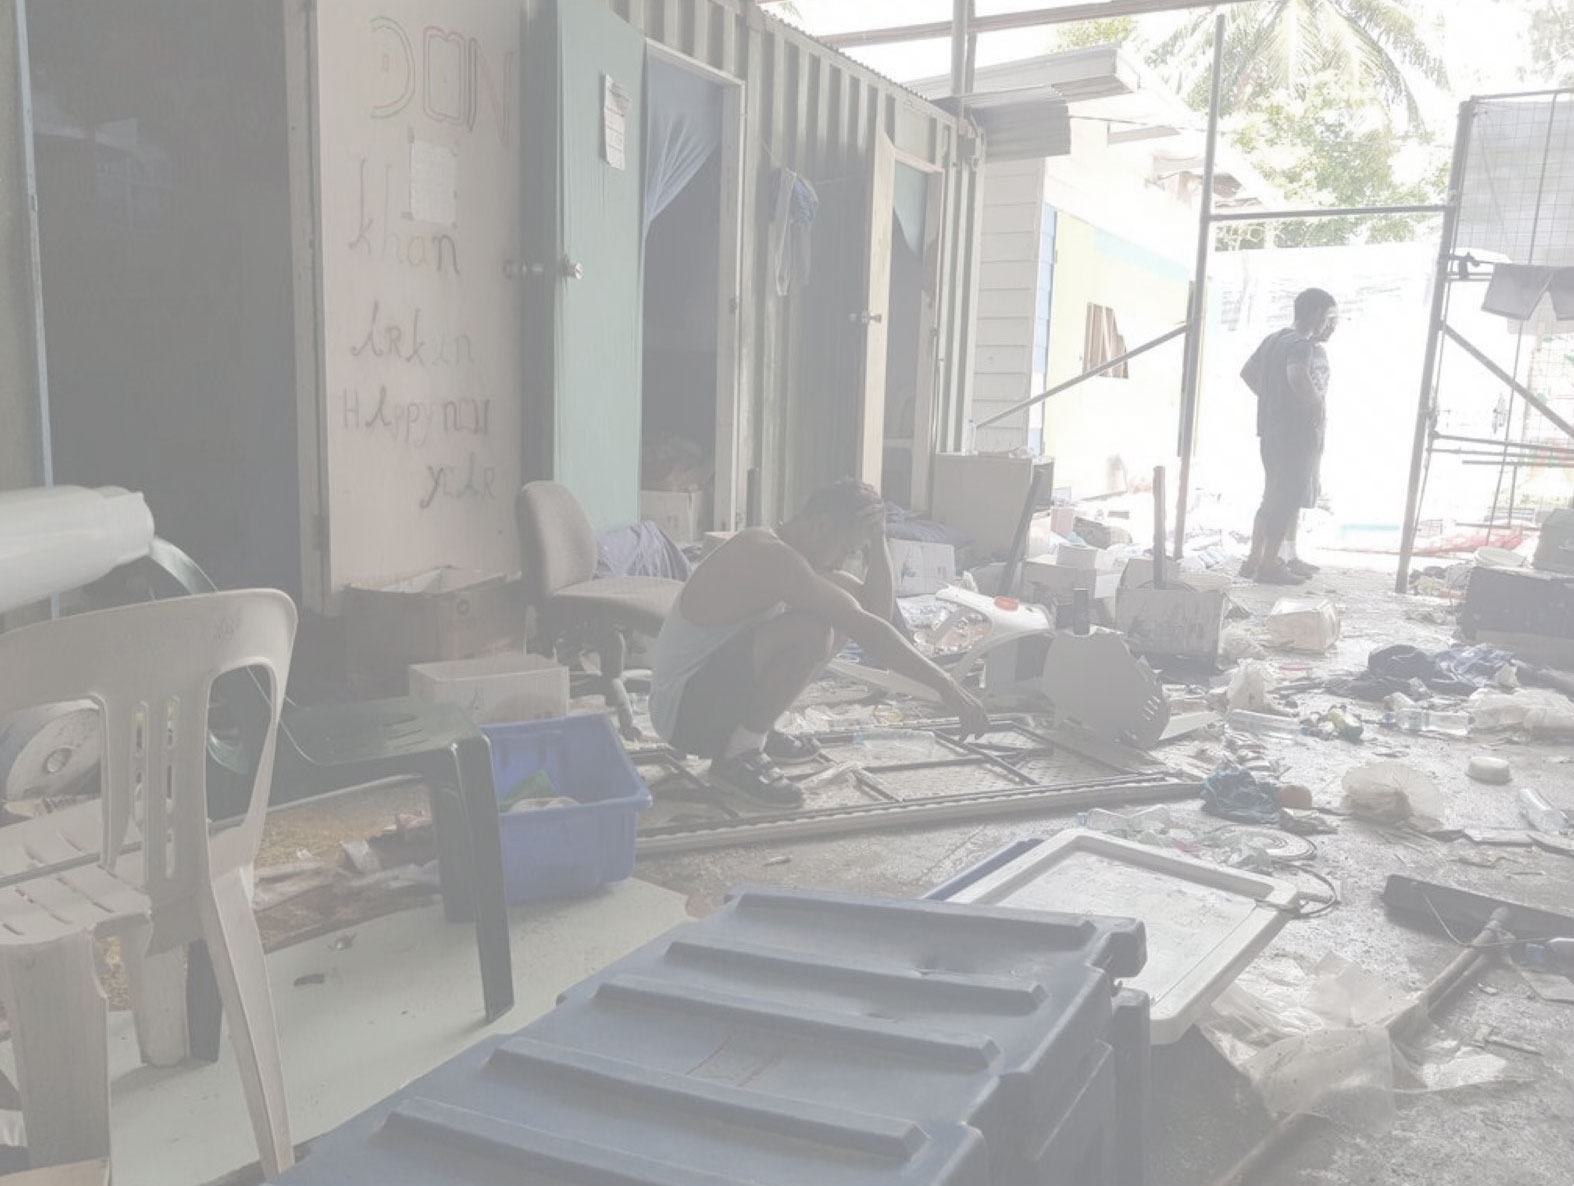 Photo: A mess remains after PNG immigration officials raid and ransack the camp